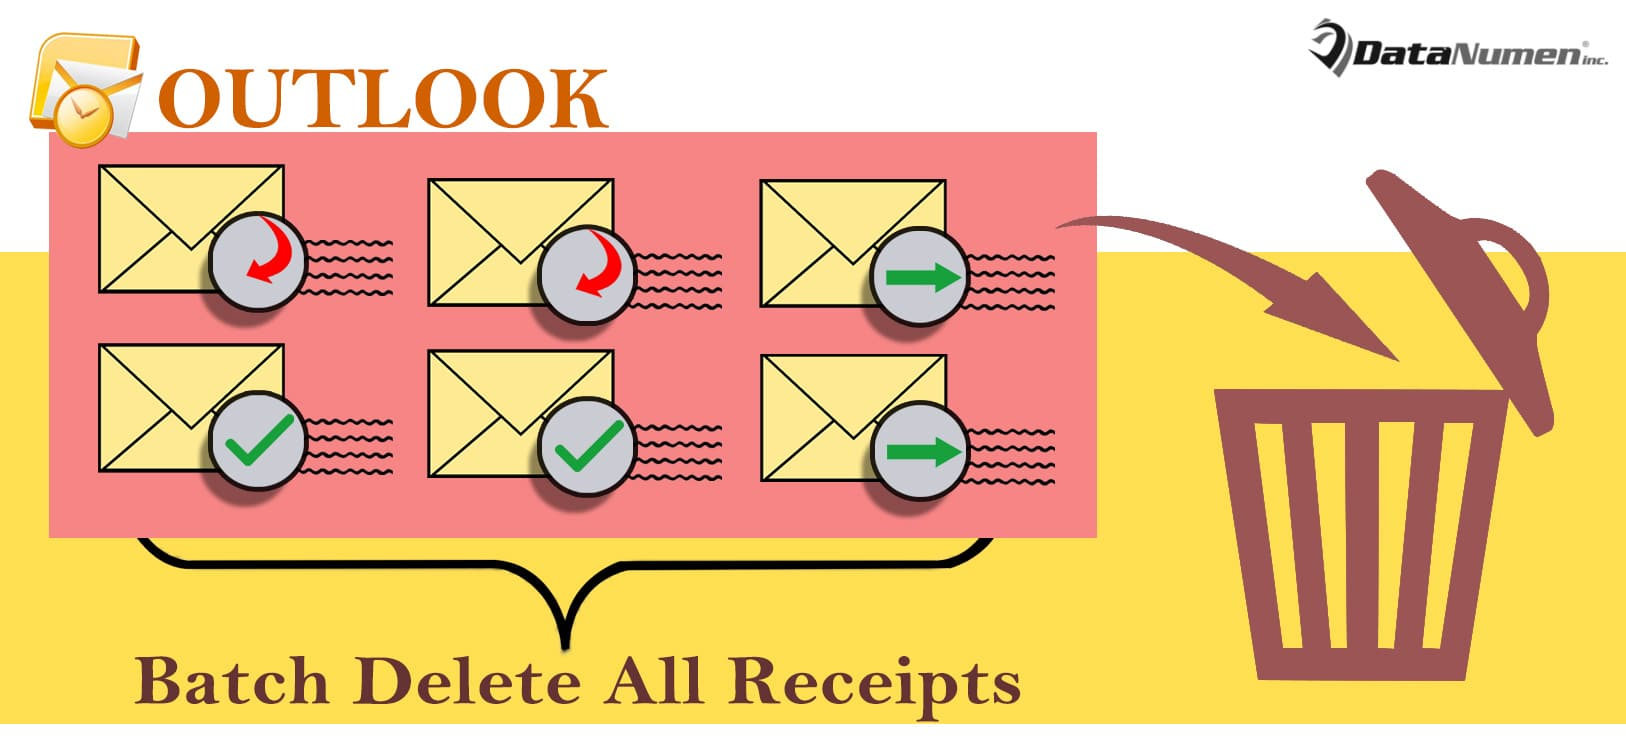 Batch Delete All Receipts in Your Outlook